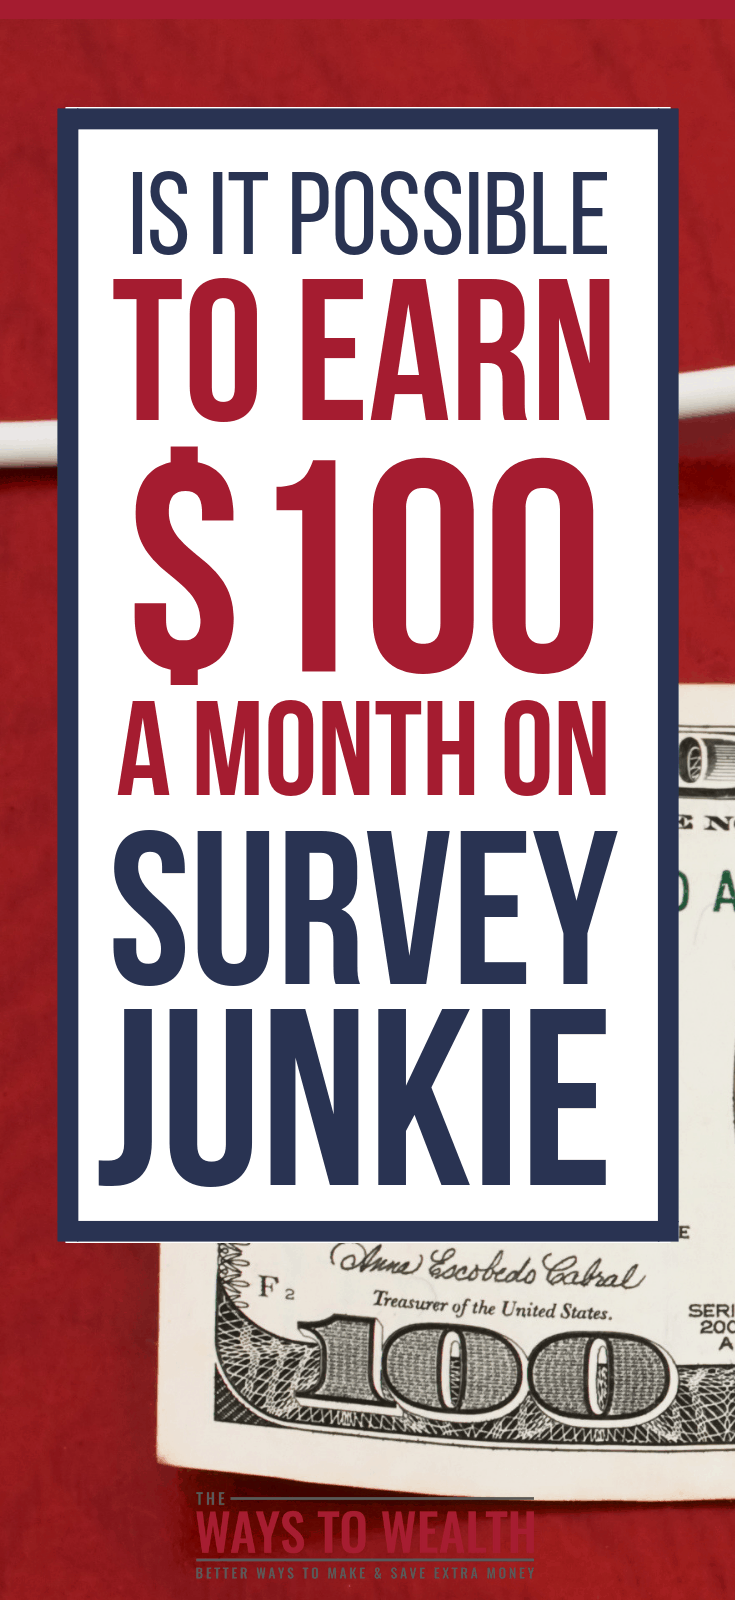 This Survey Junkie review teaches you all you need to know about Survey Junkie. Plus, smart tips to maximize your earnings.survey junkie review | survey sites that pay extra cash | earn free gift card | extra cash ideas#thewaystowealth #surveys #makemoneyonline #makemoney